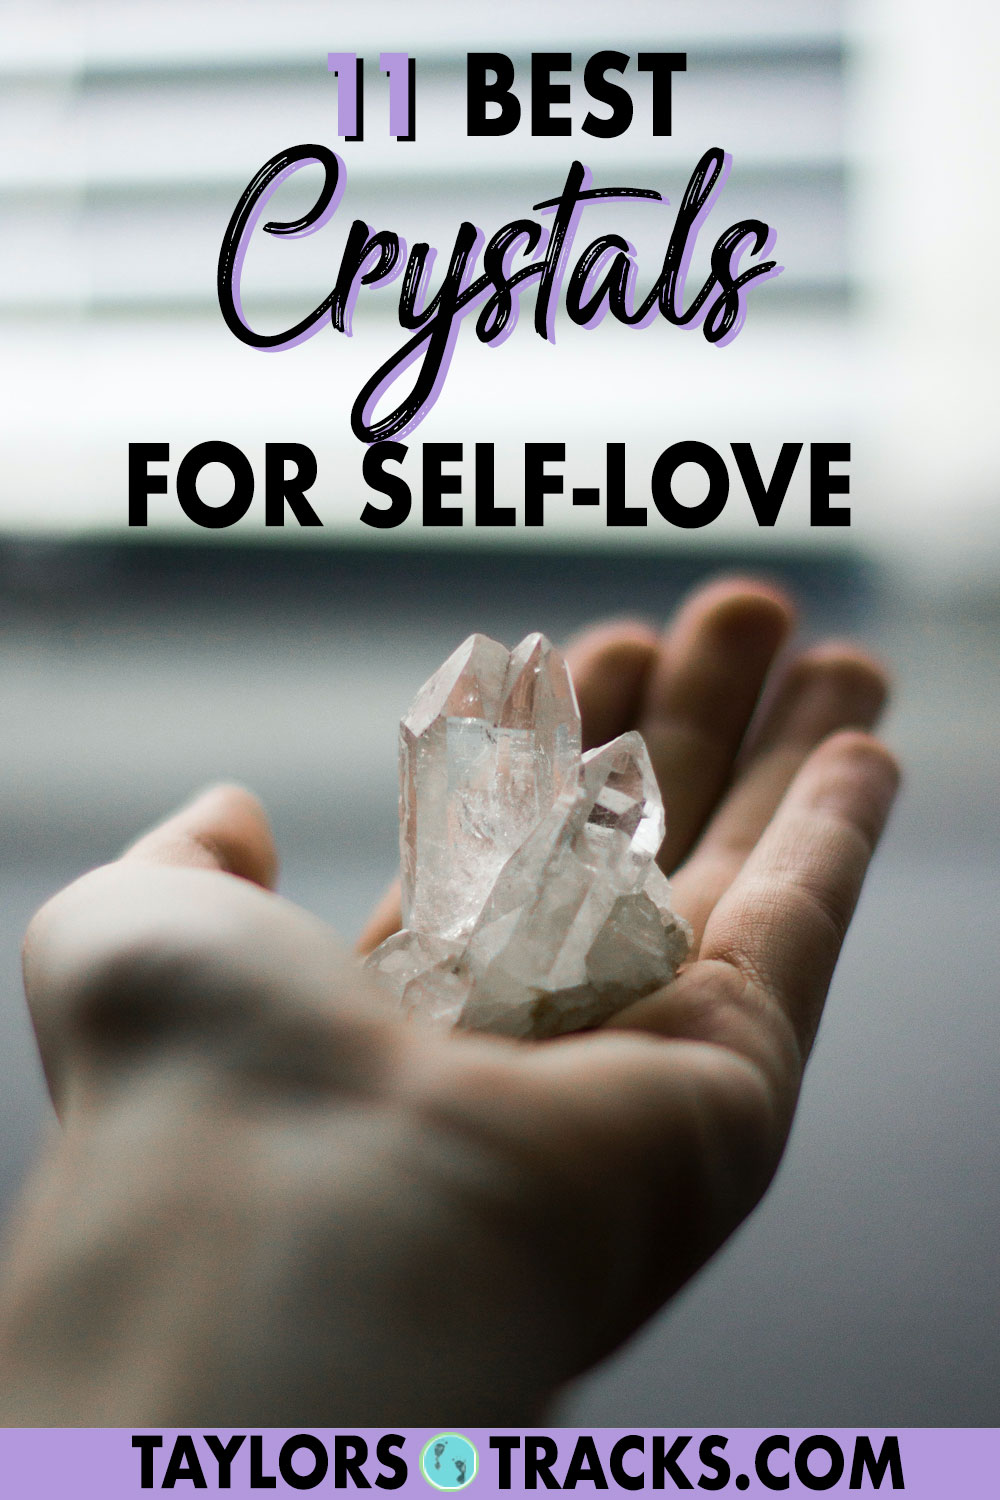 Feeling a lack of love for yourself and feel like you've tried everything? Why not try a boost in self-love with these crystals for self-love? Click to find out which crystals are perfect for you.